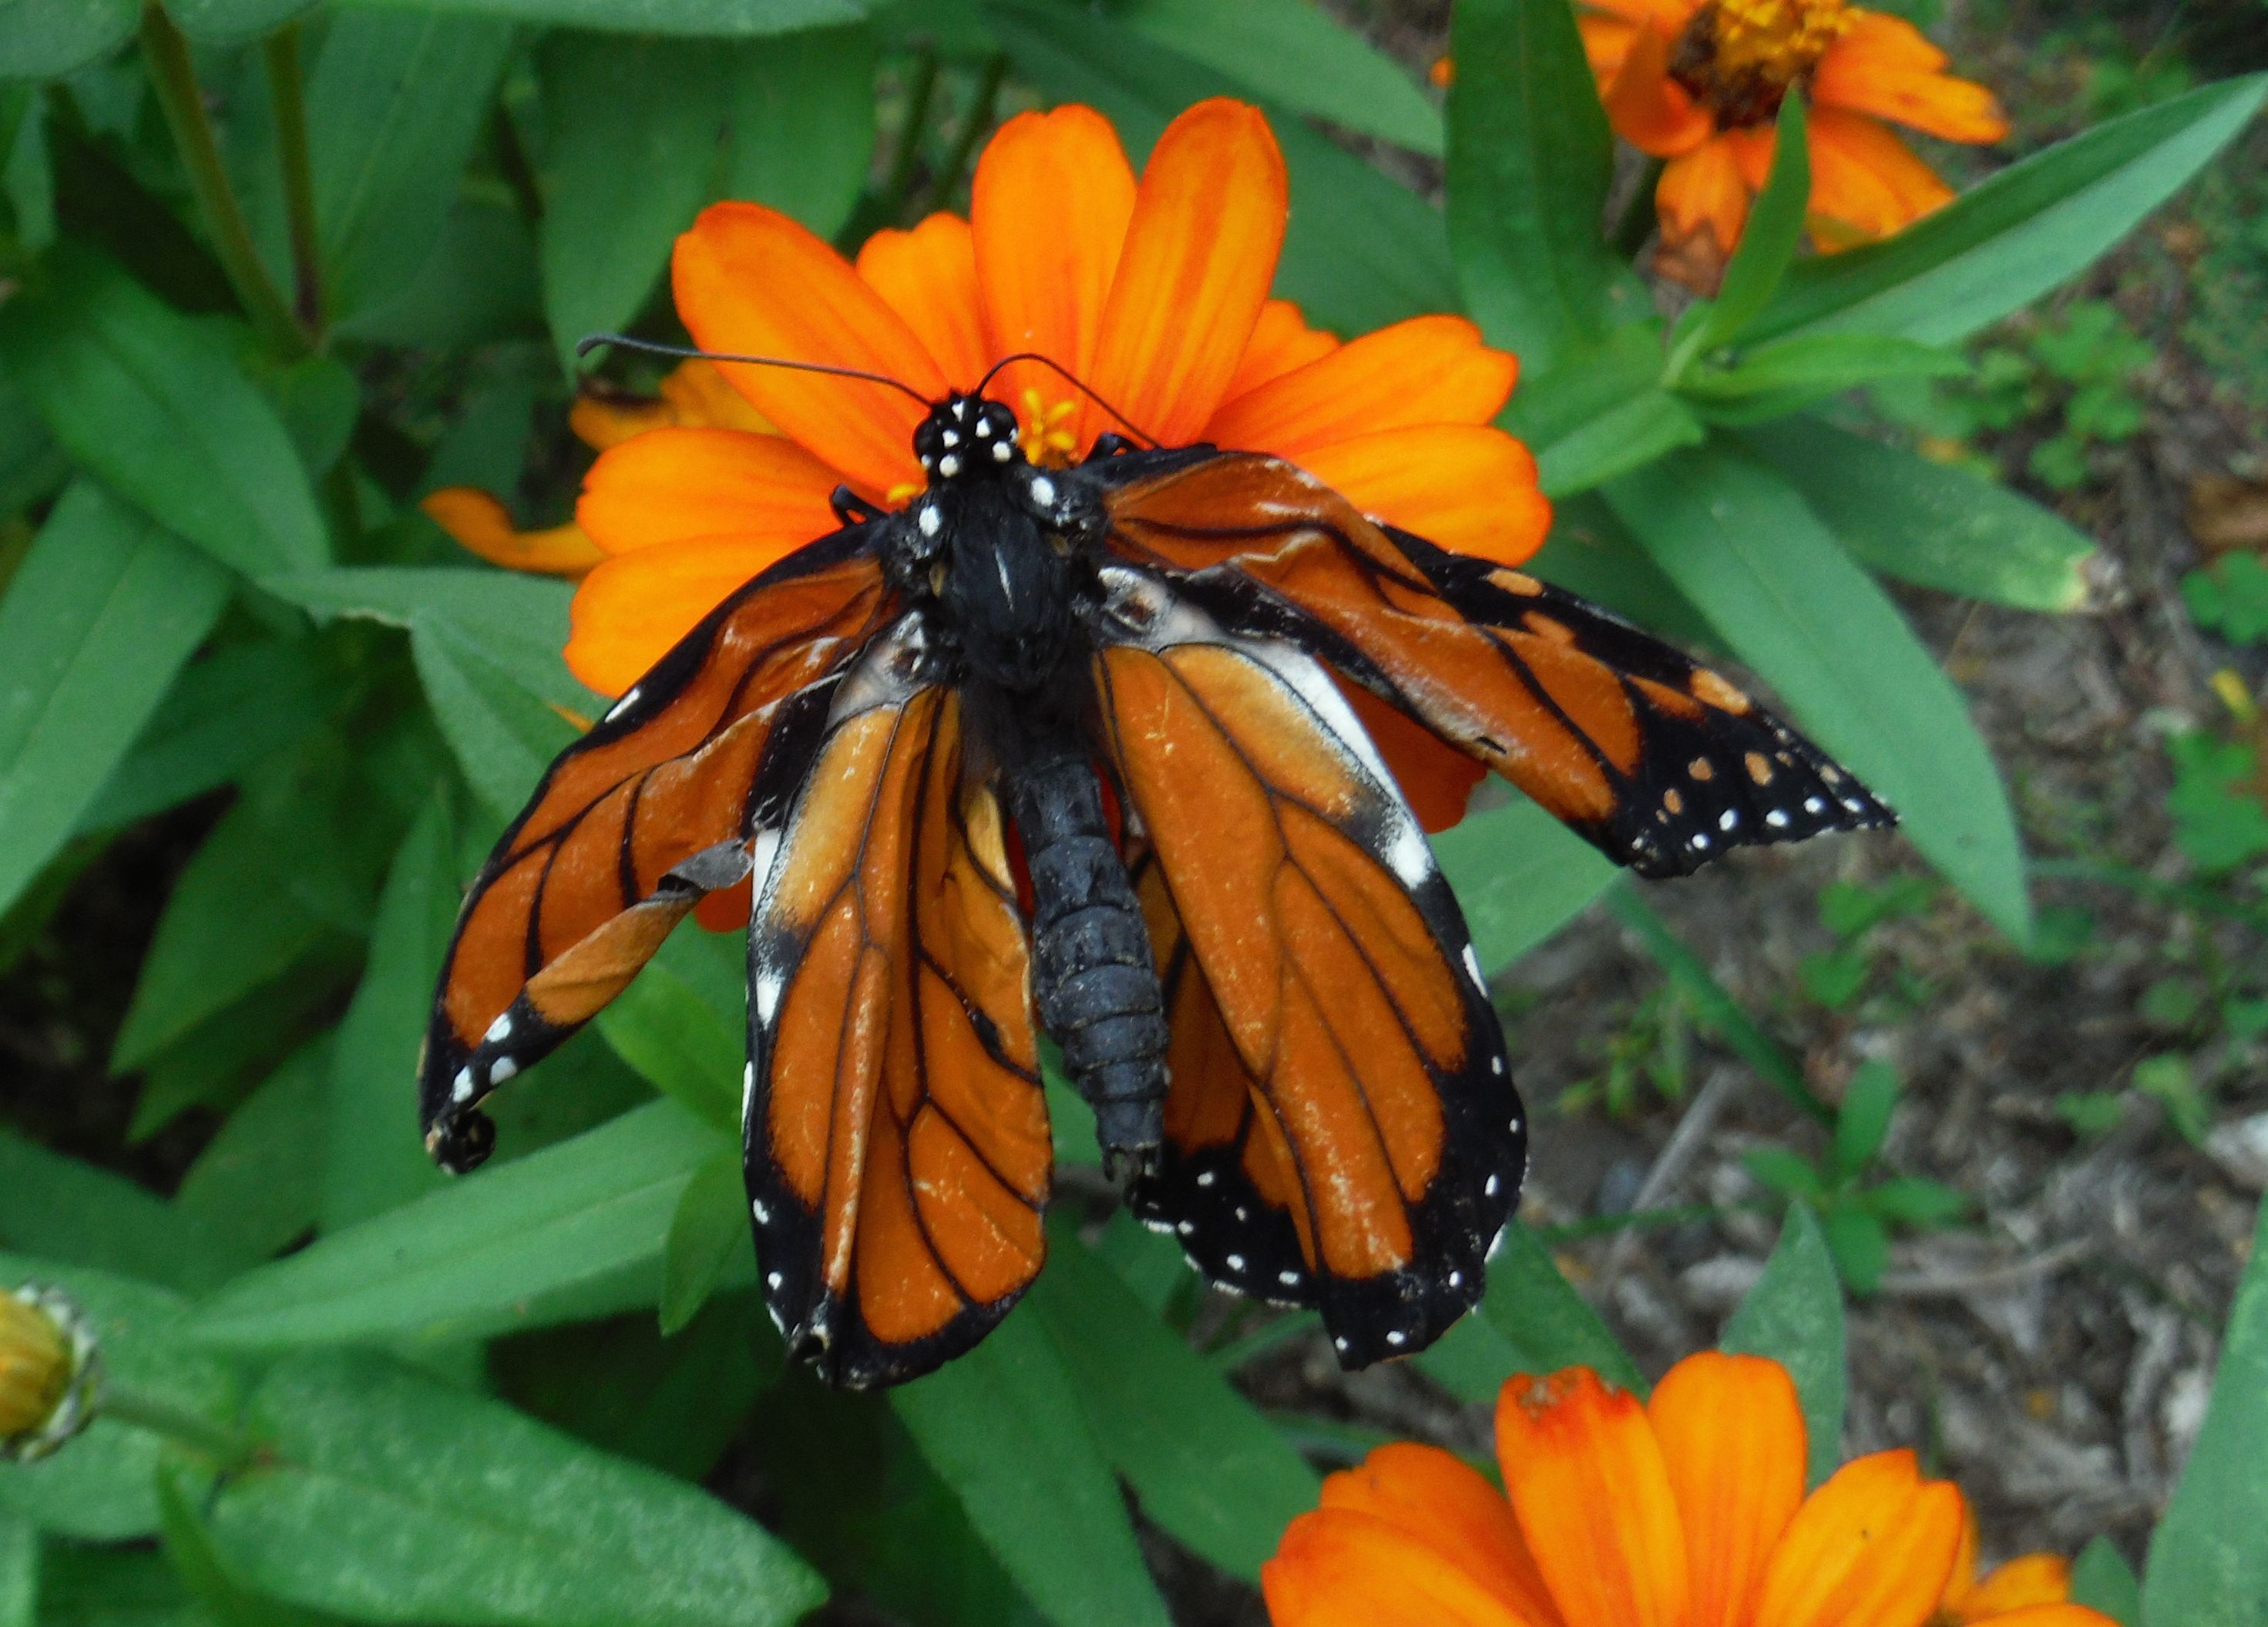 why does this monarch butterfly have crumpled wings